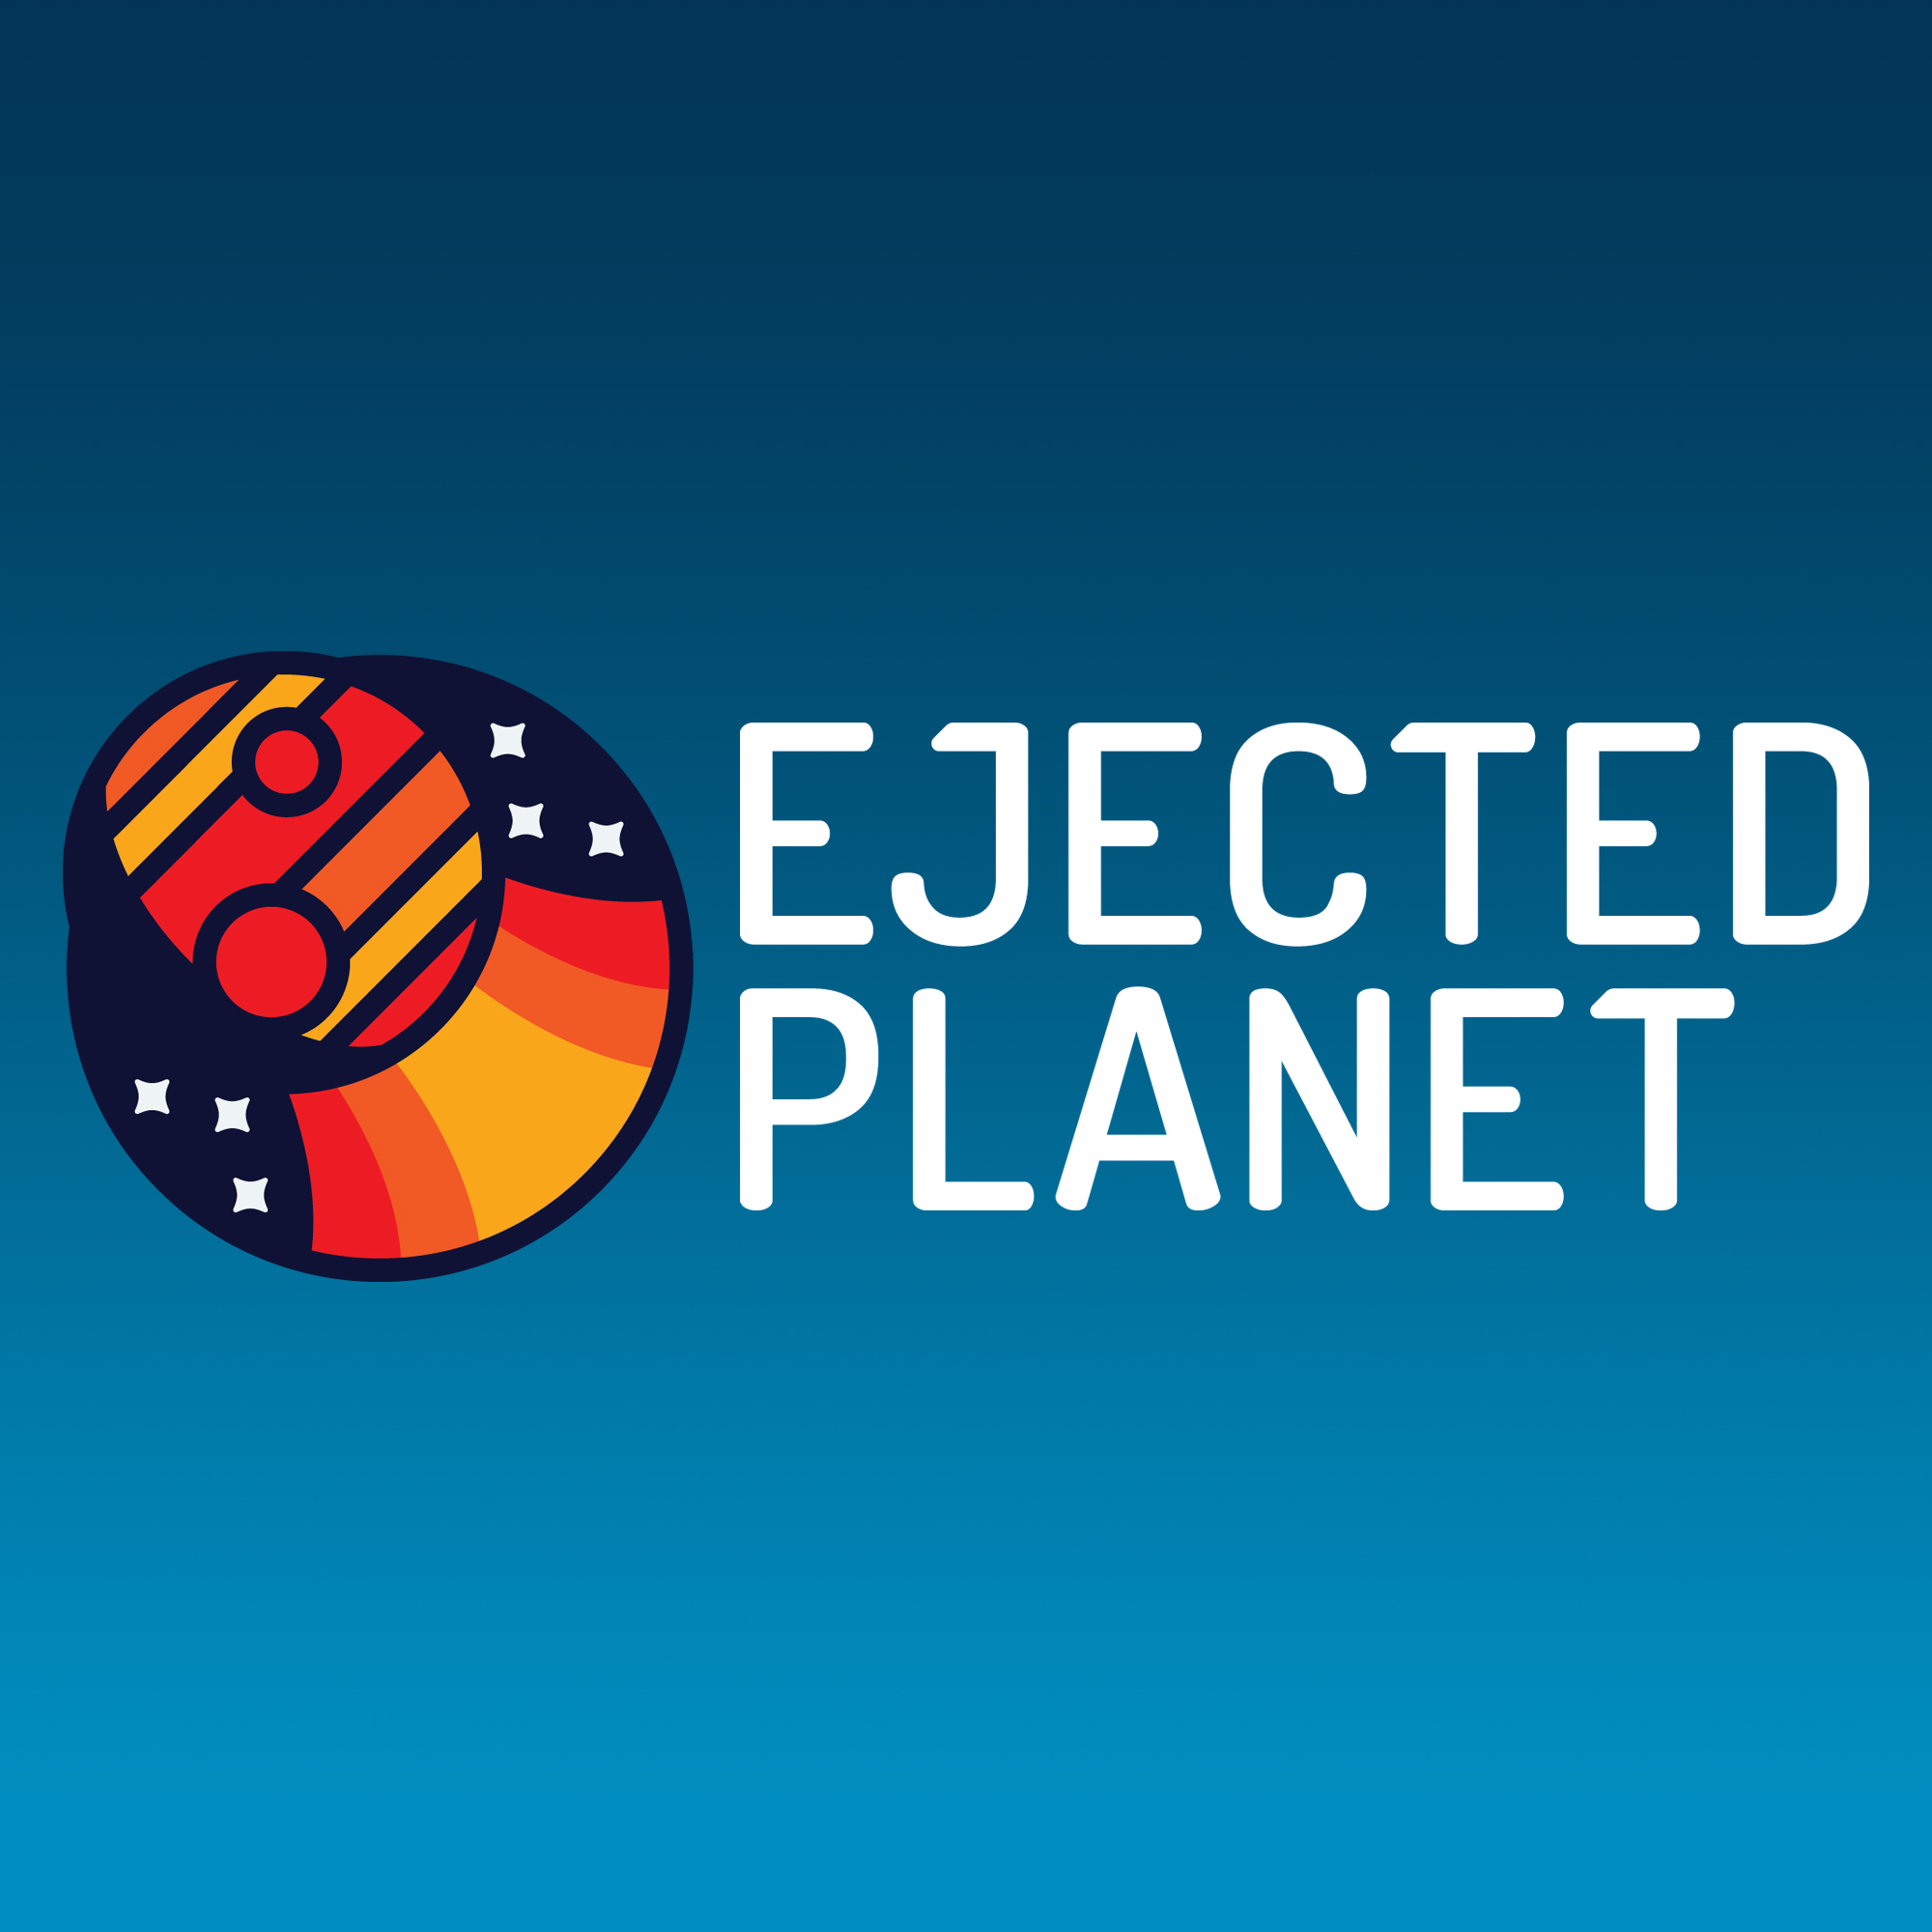 Logo for Ejected planet